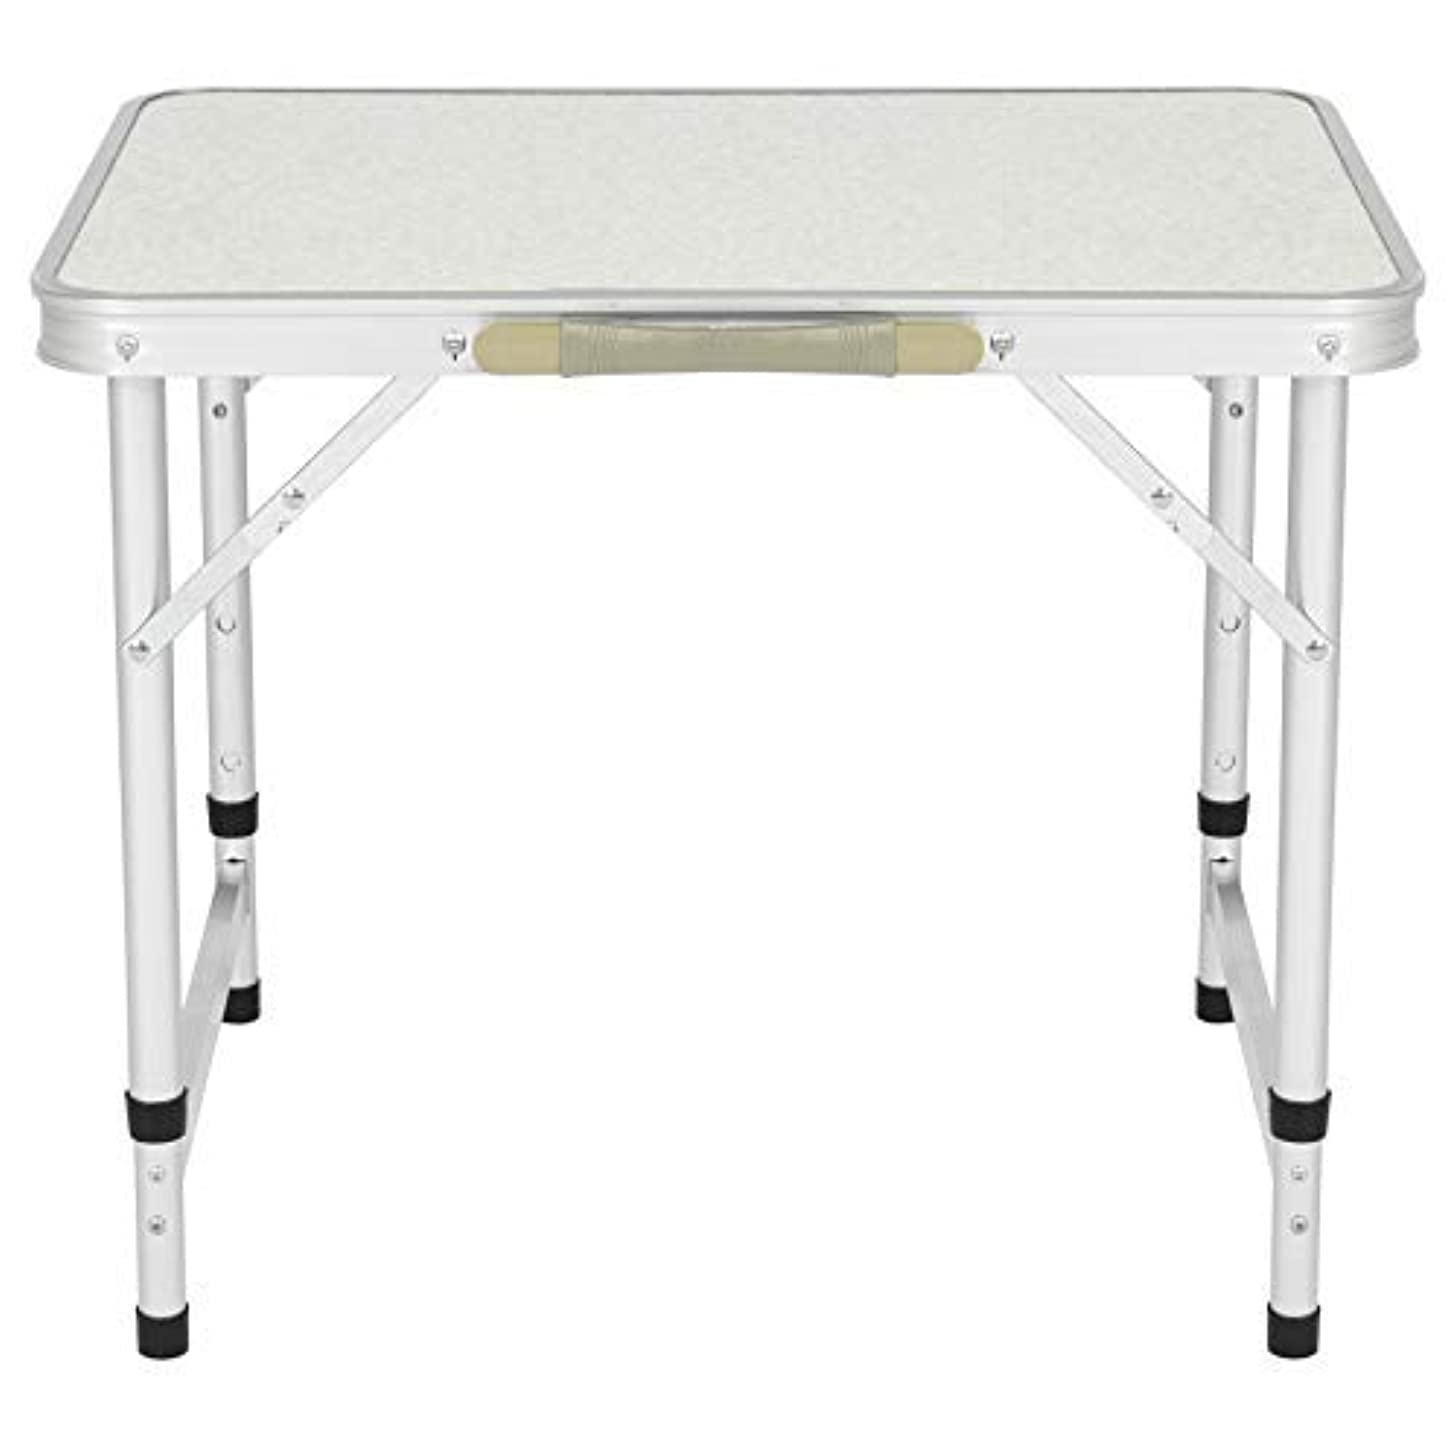 Best Choice Products Aluminum Camping Picnic Folding Table Portable Outdoor, 23.5